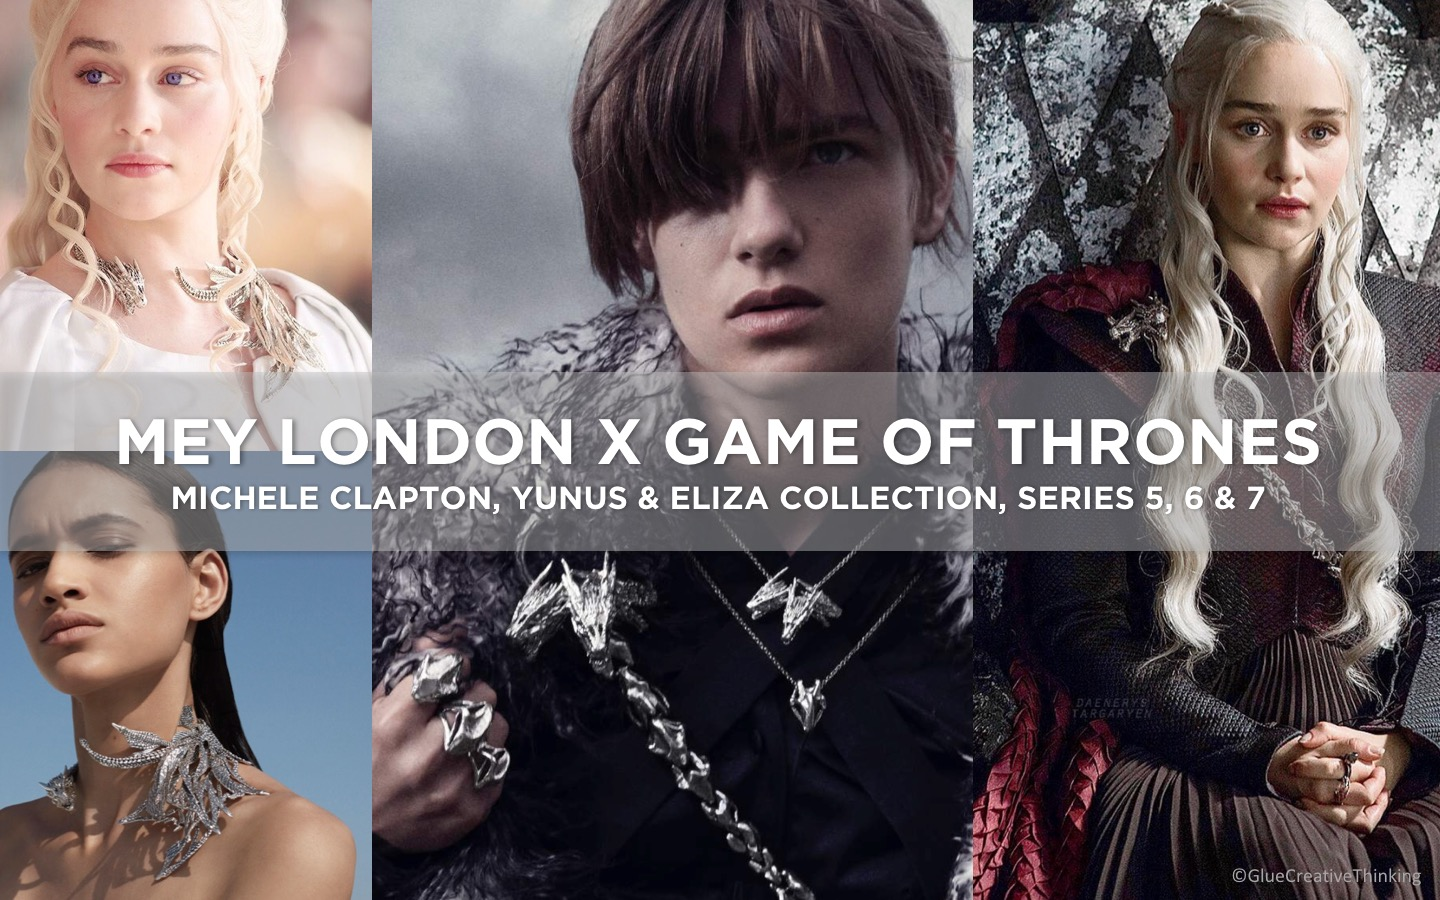 MEY LONDON X GAME OF THRONES